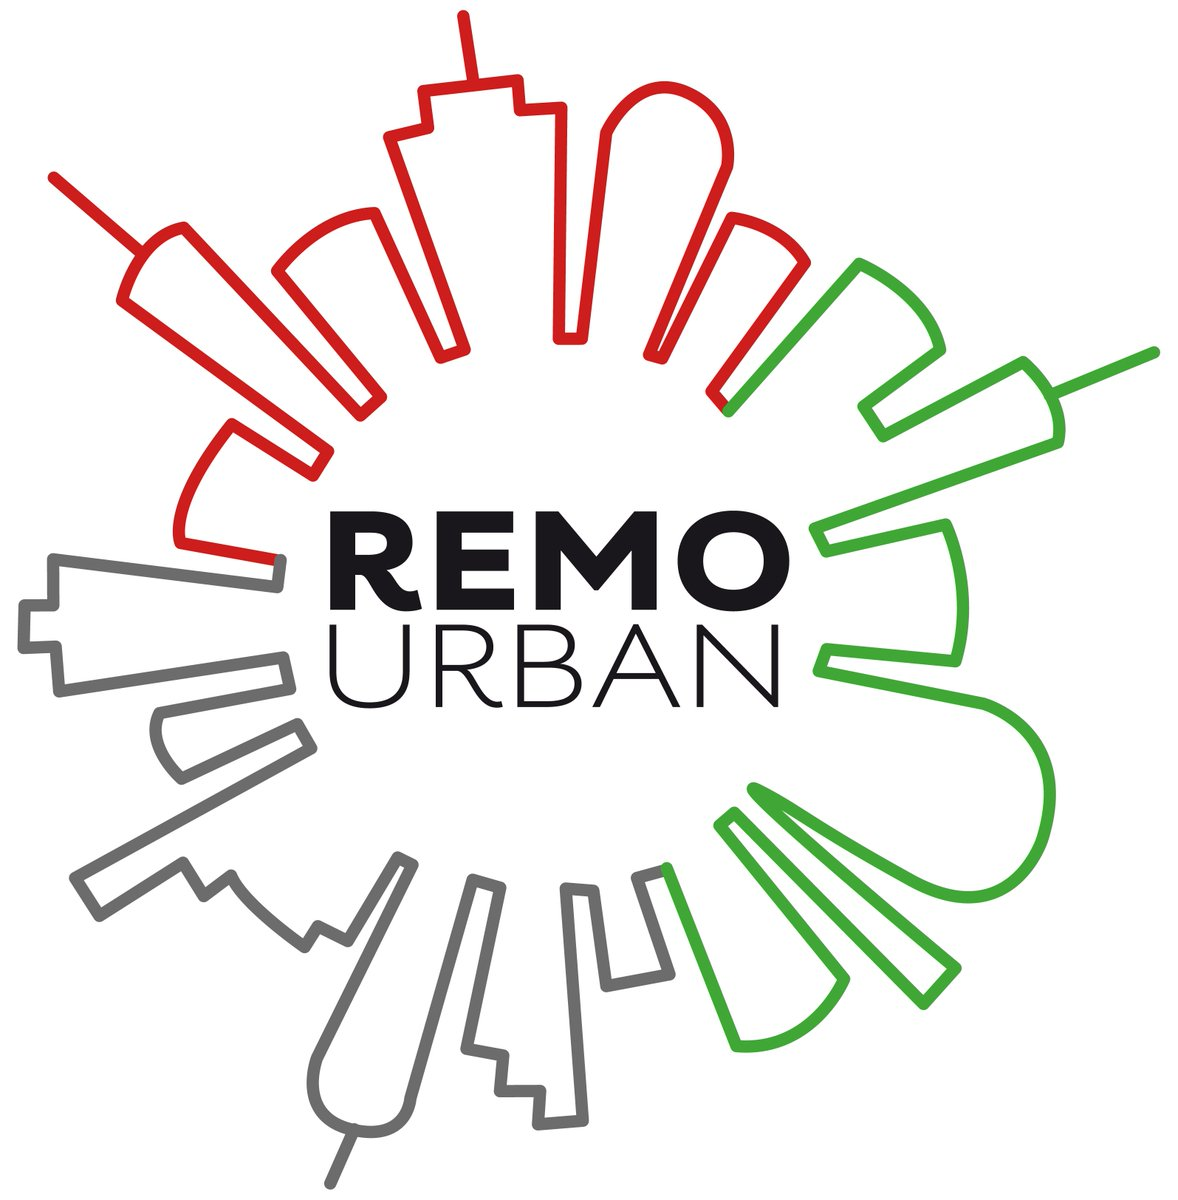 Have your say on #Nottingham's smart city project @Remourban_EU & enter a prize draw for a Robin Hood Travel Card worth up to £200.  @MyNottingham & partners secured over £5million of EU funding to pilot low carbon energy projects. Take the survey 👉https://bit.ly/2Qb5Hhq